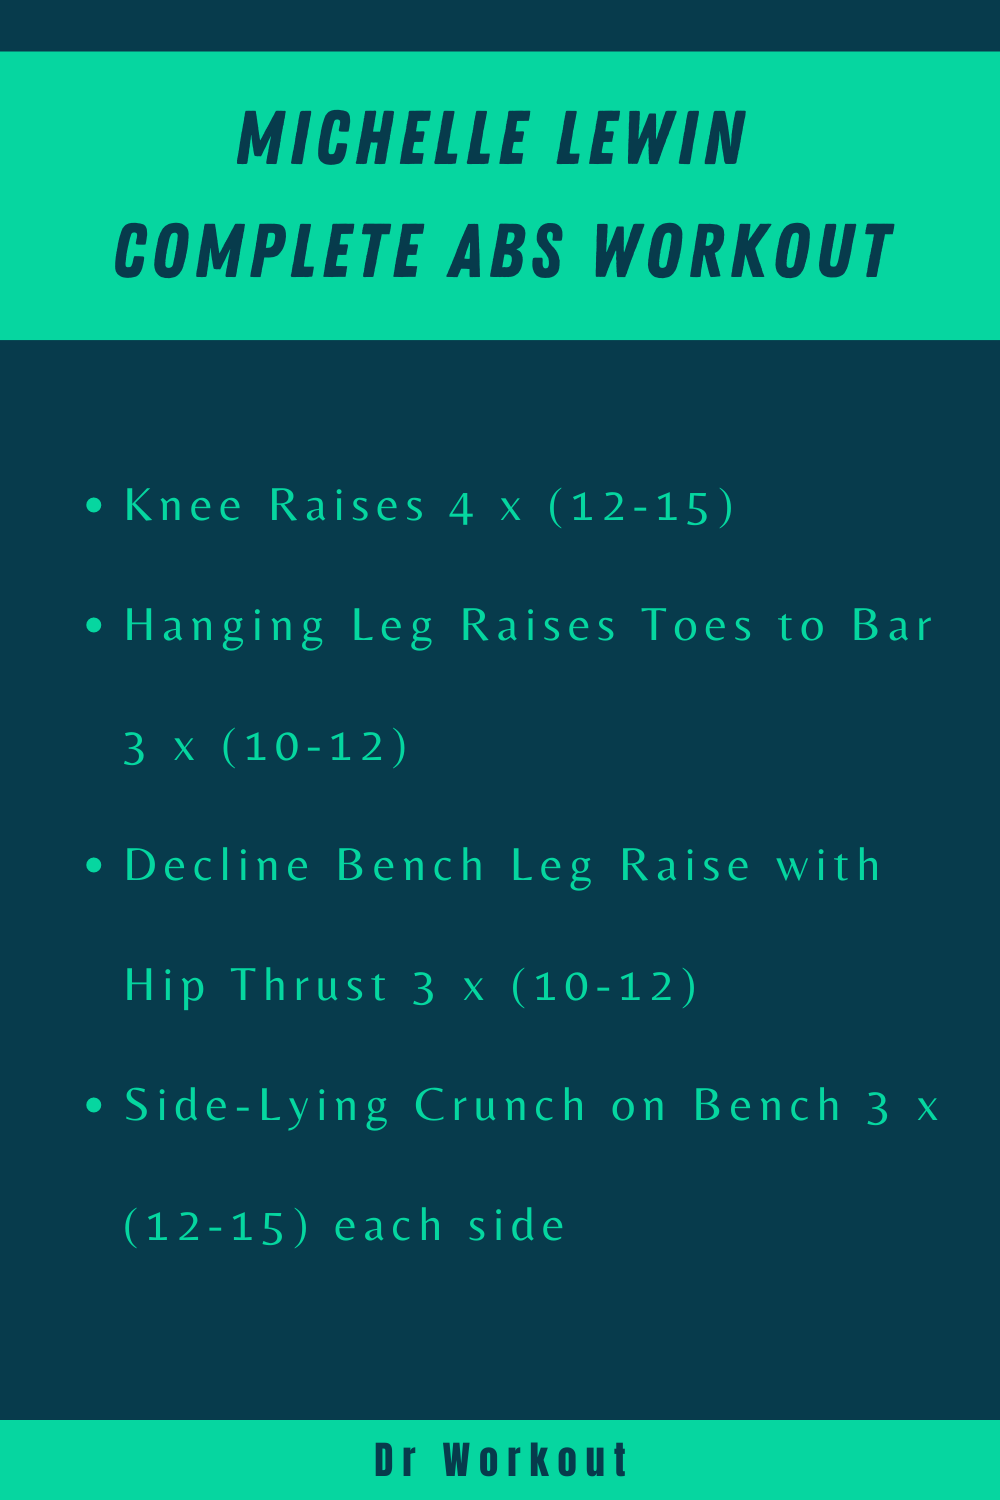 Michelle Lewin Complete Abs Workout